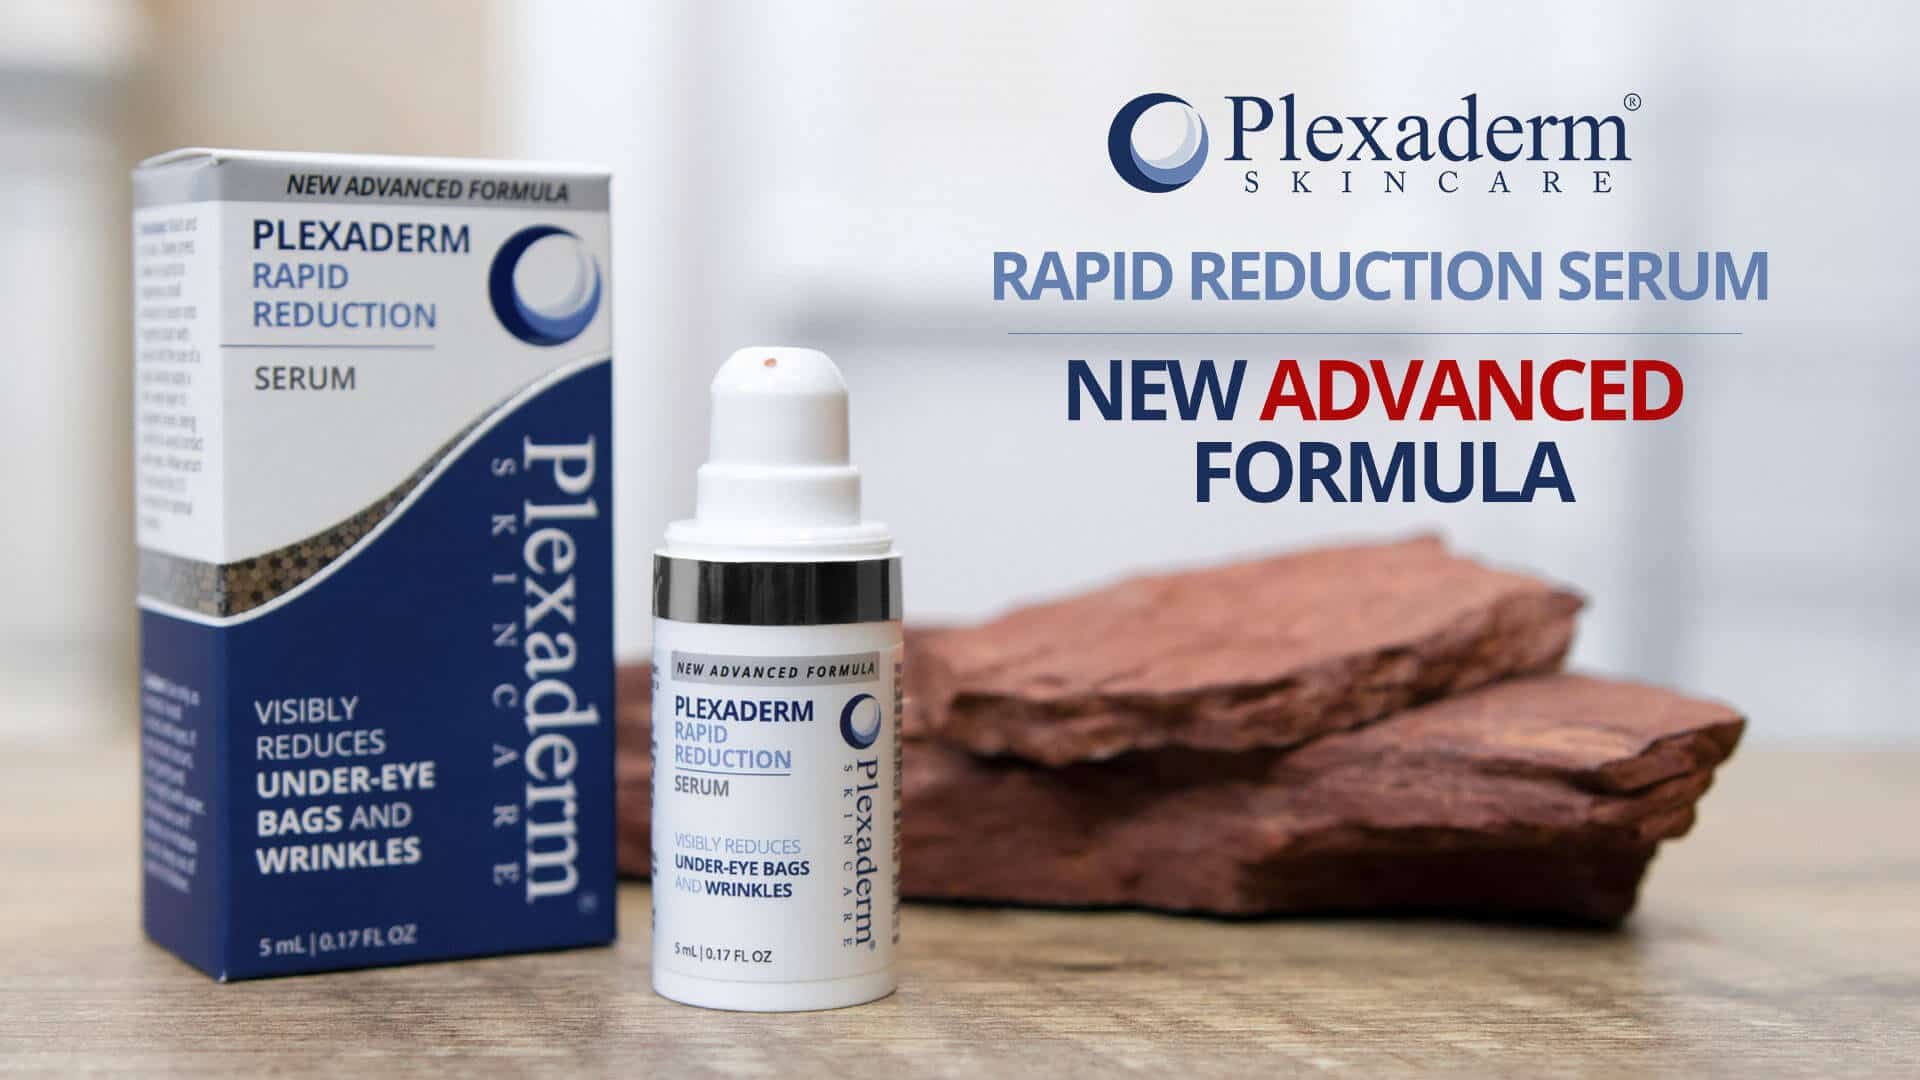 skincarerejuvenation review of plexaderm products